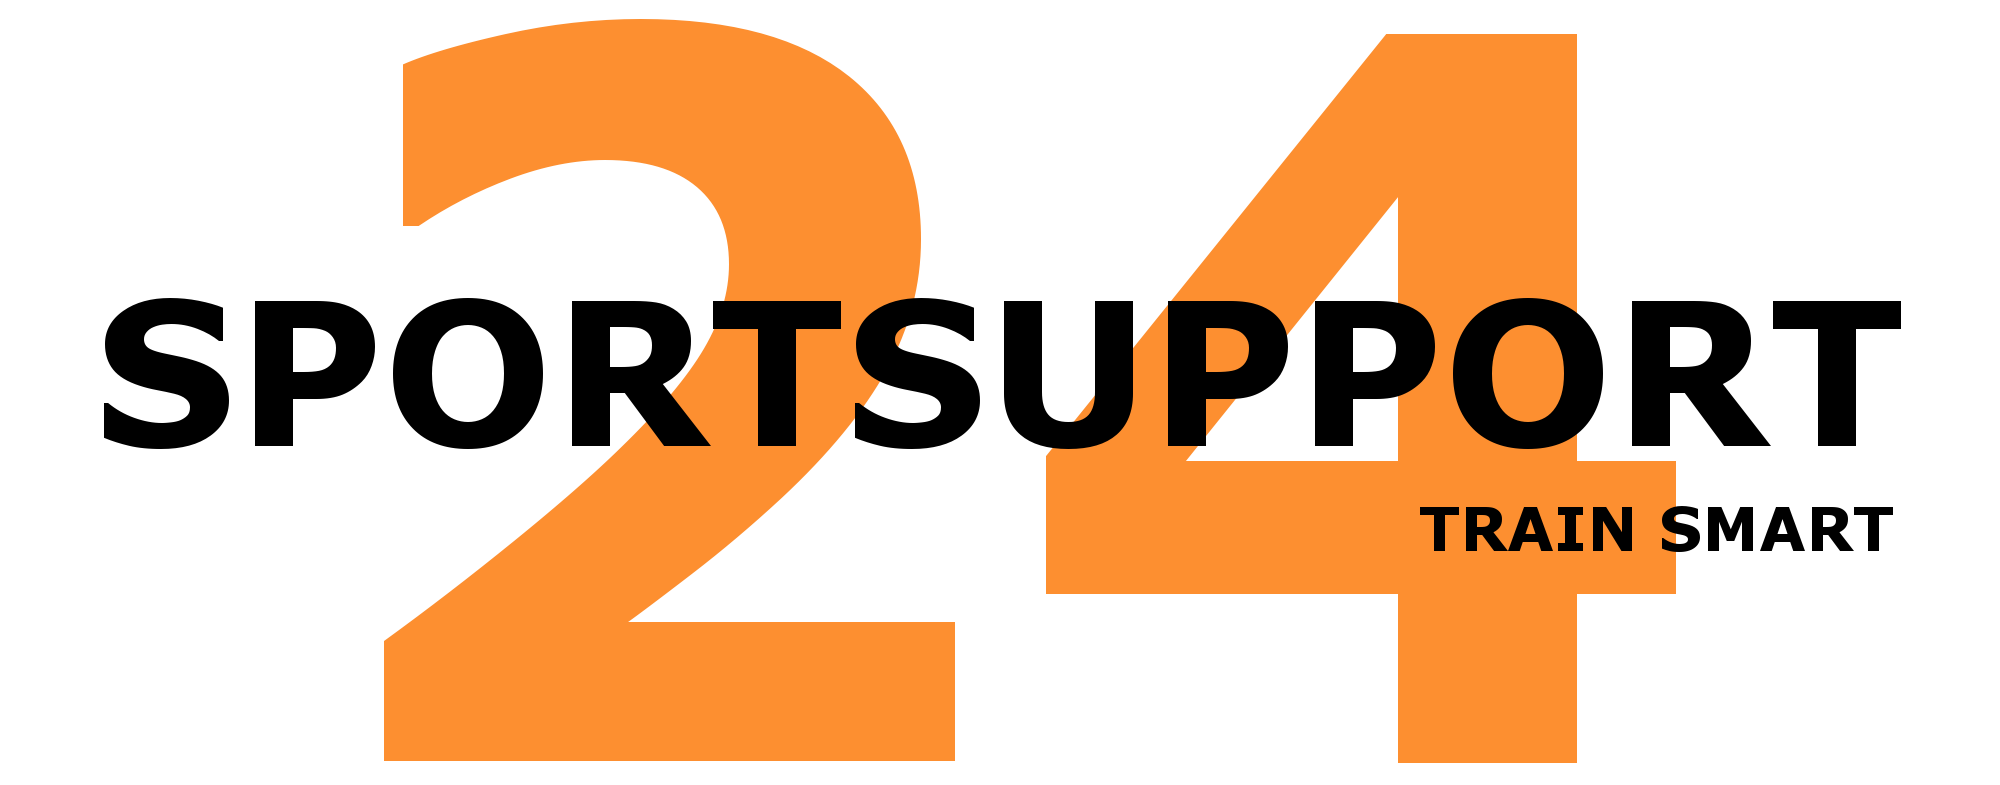 Sportsupport-24